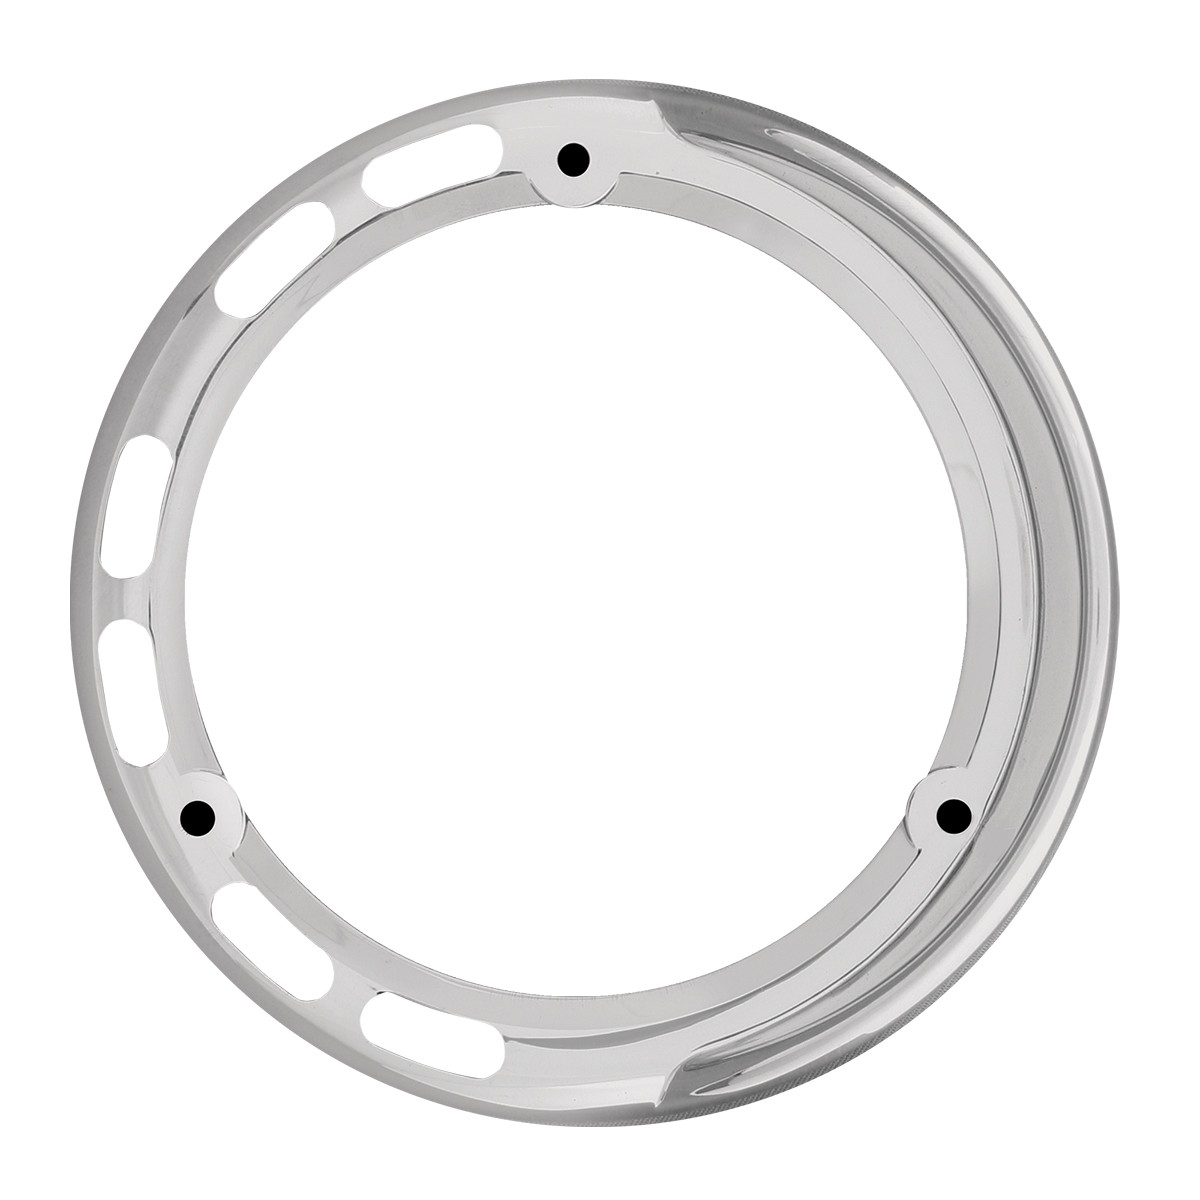 "78366 Chrome Plastic Bezel w/ Visor for 4"" Pearl LED Pedestal Lights"